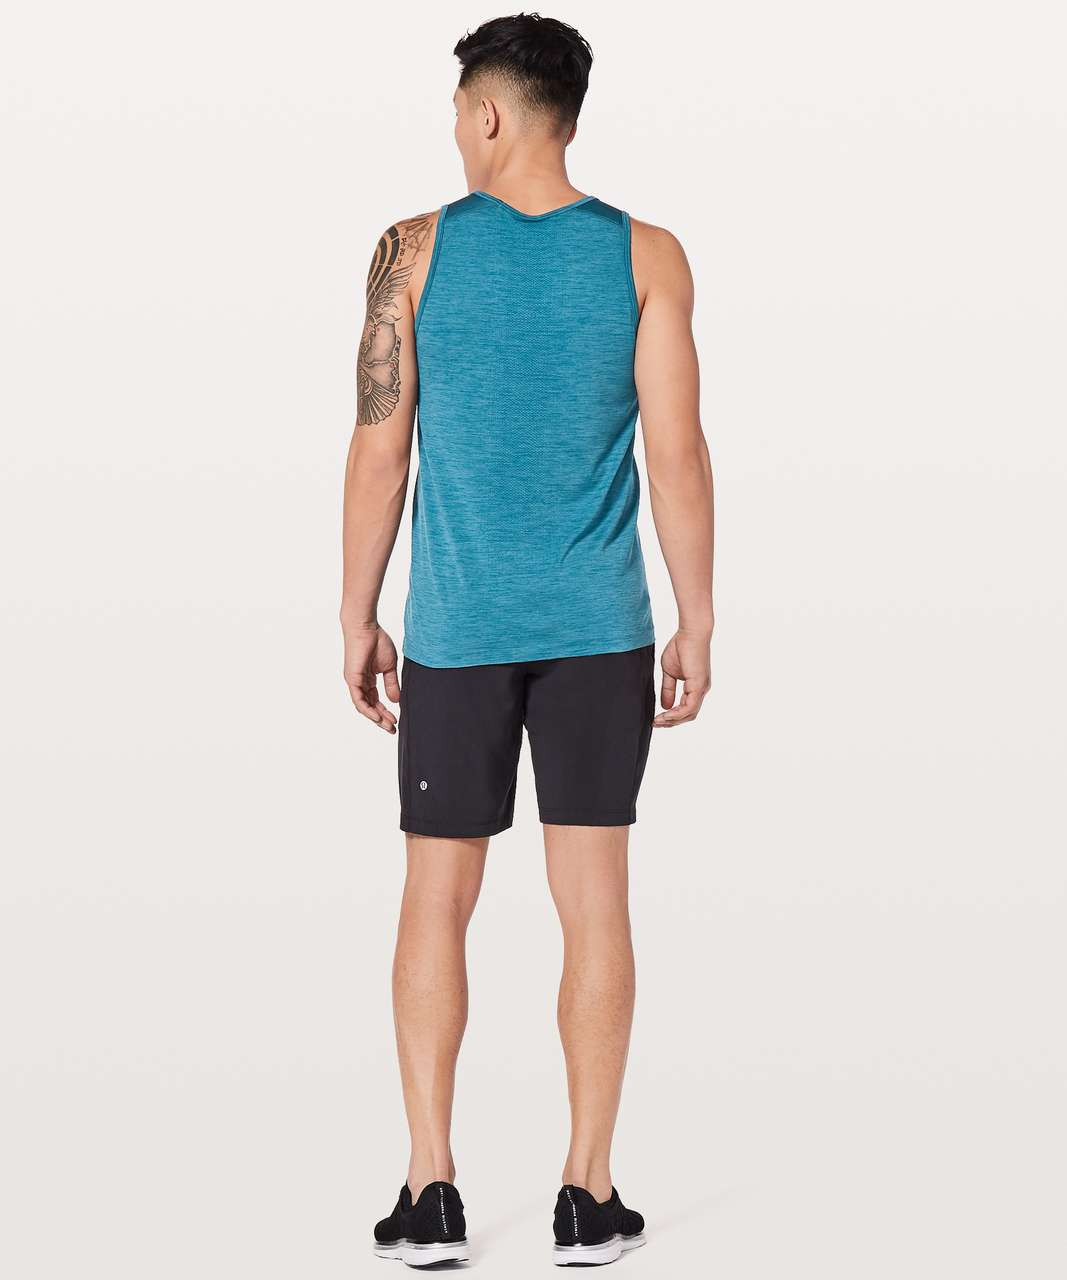 Lululemon Metal Vent Tech Tank - Poseidon / Hawk Blue